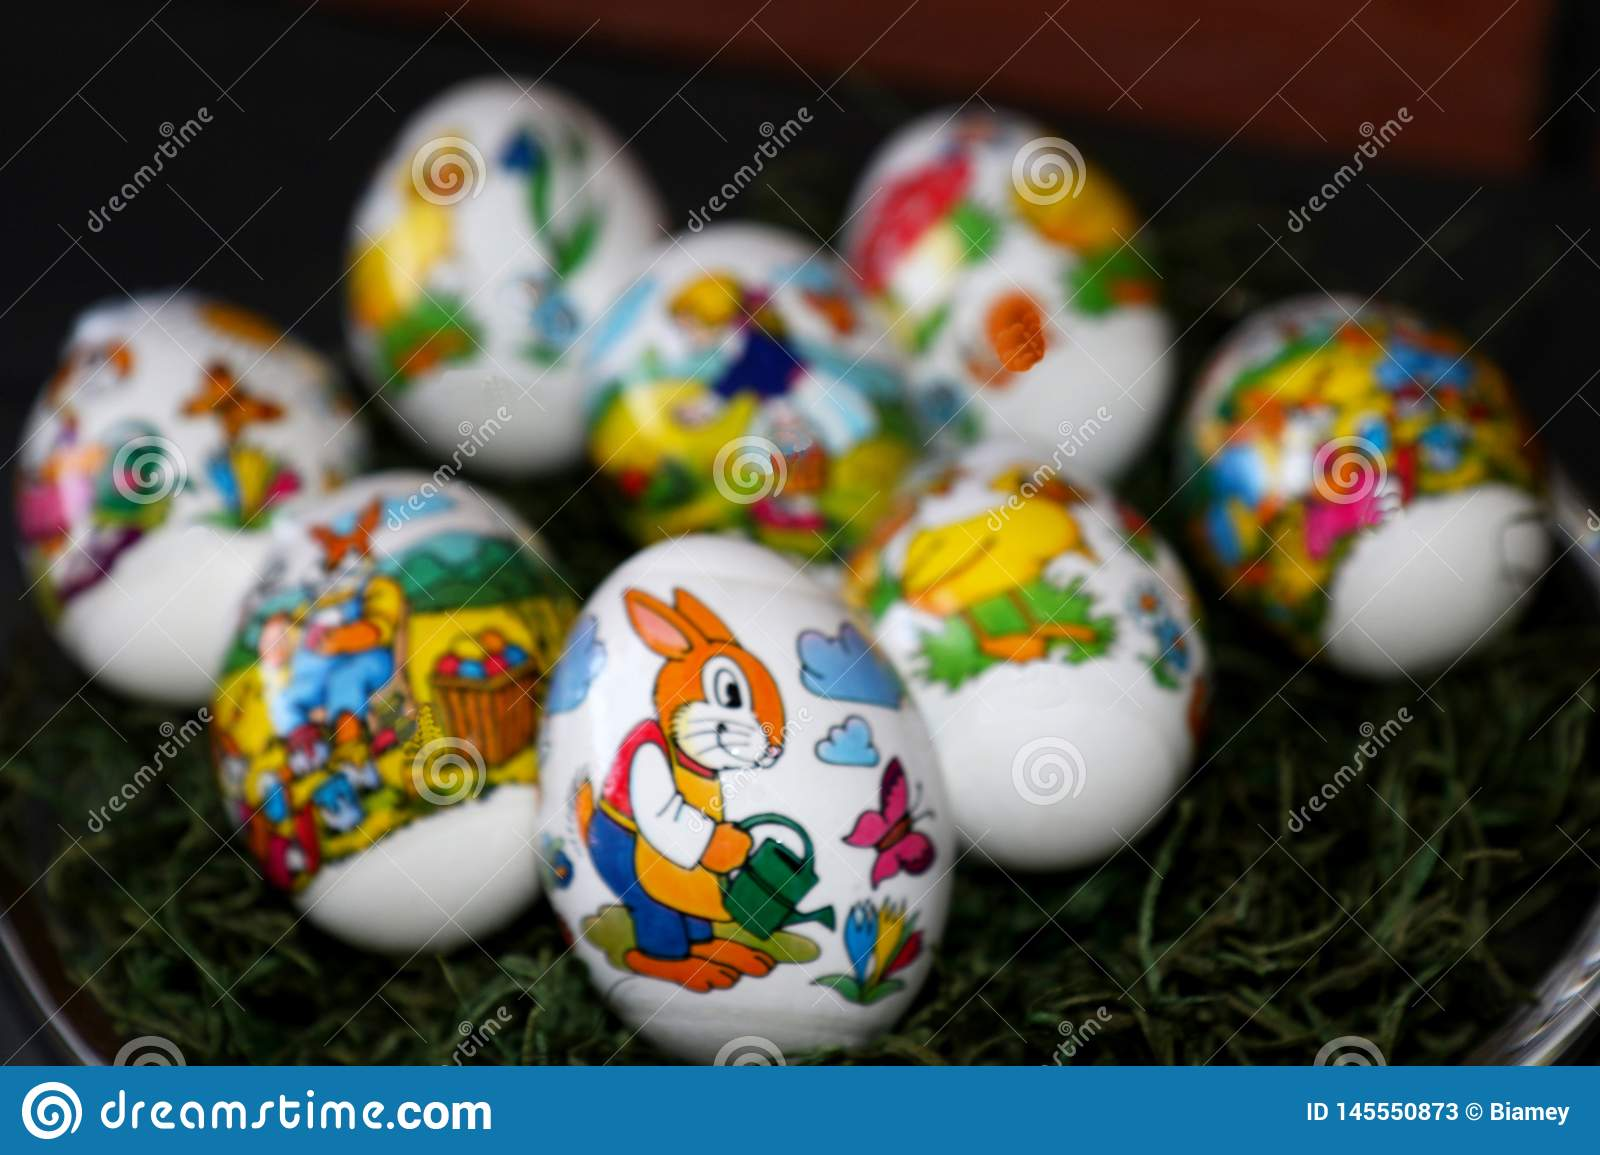 Closer view on an easter egg with easter bunny